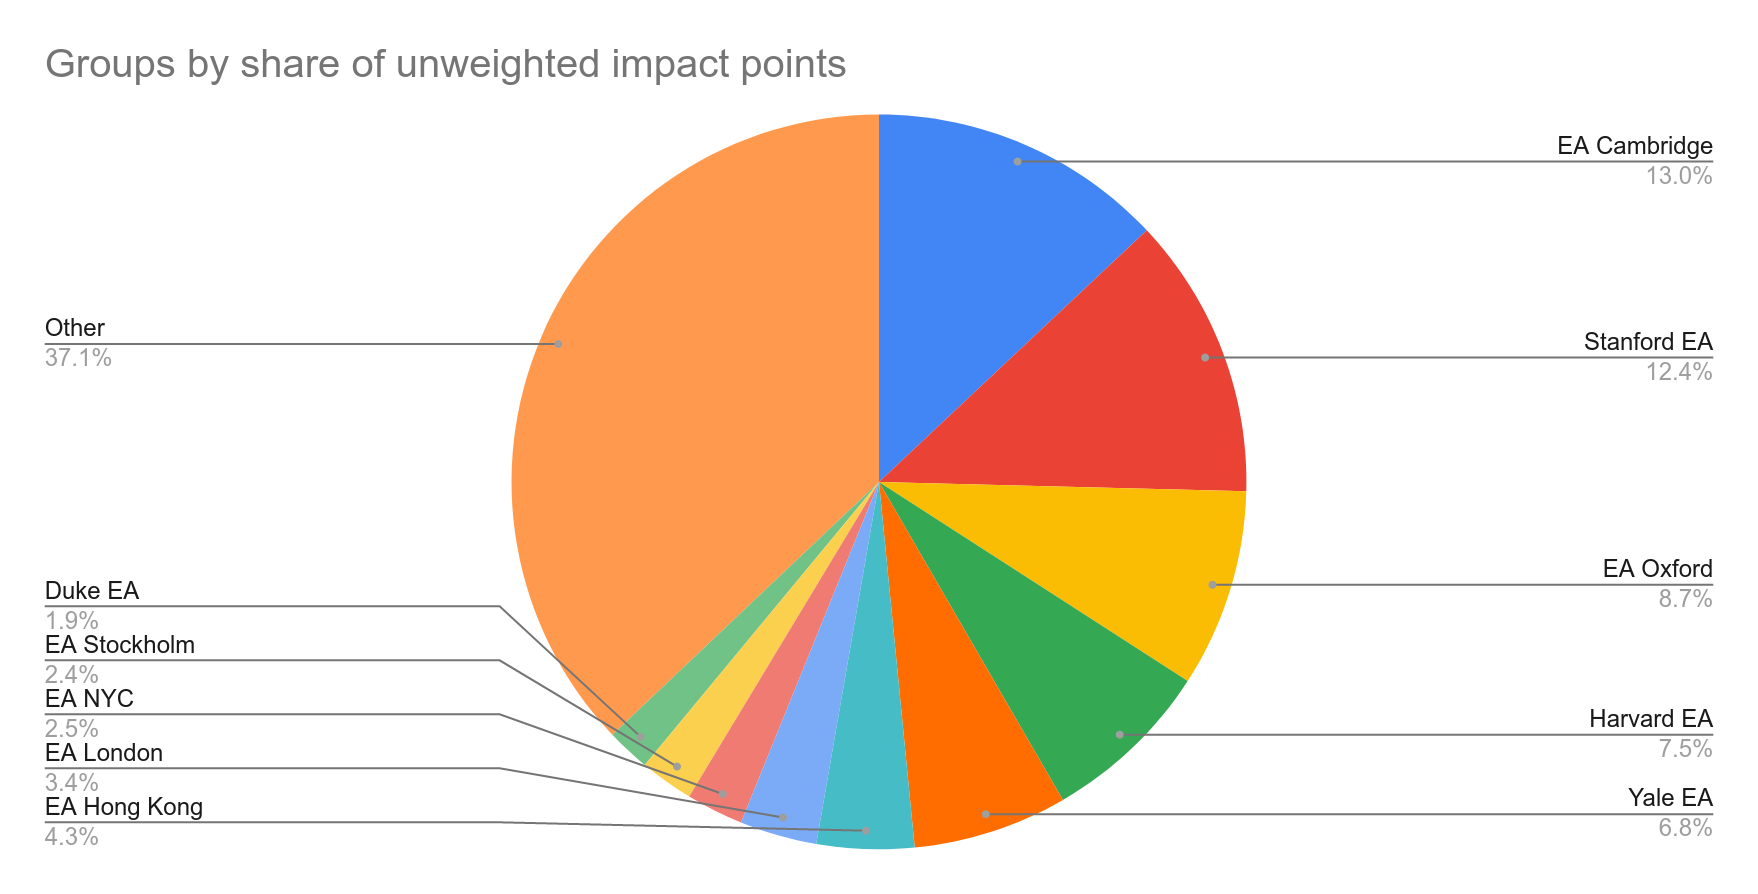 Groups by unweighted impact points